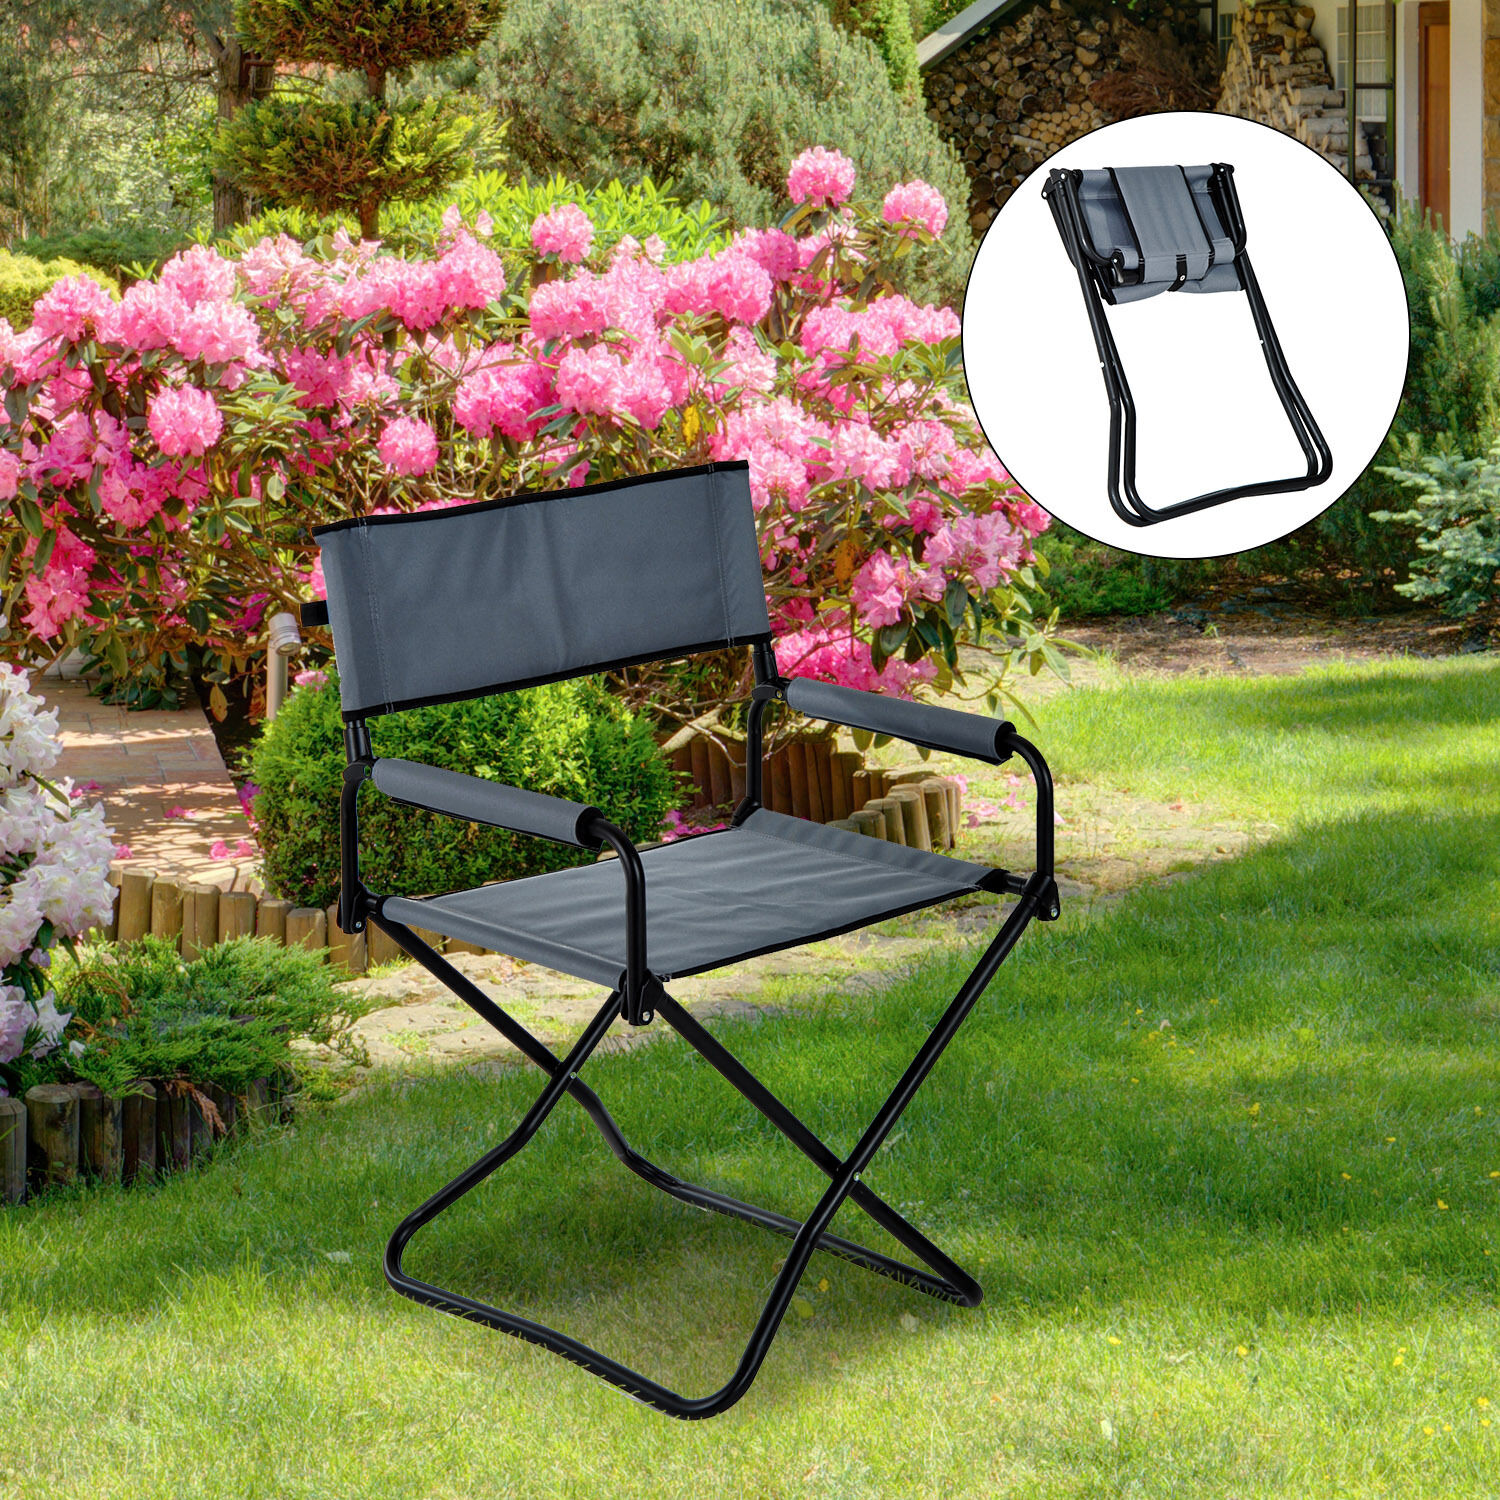 portable picnic chair metal folding camping fishing seat garden